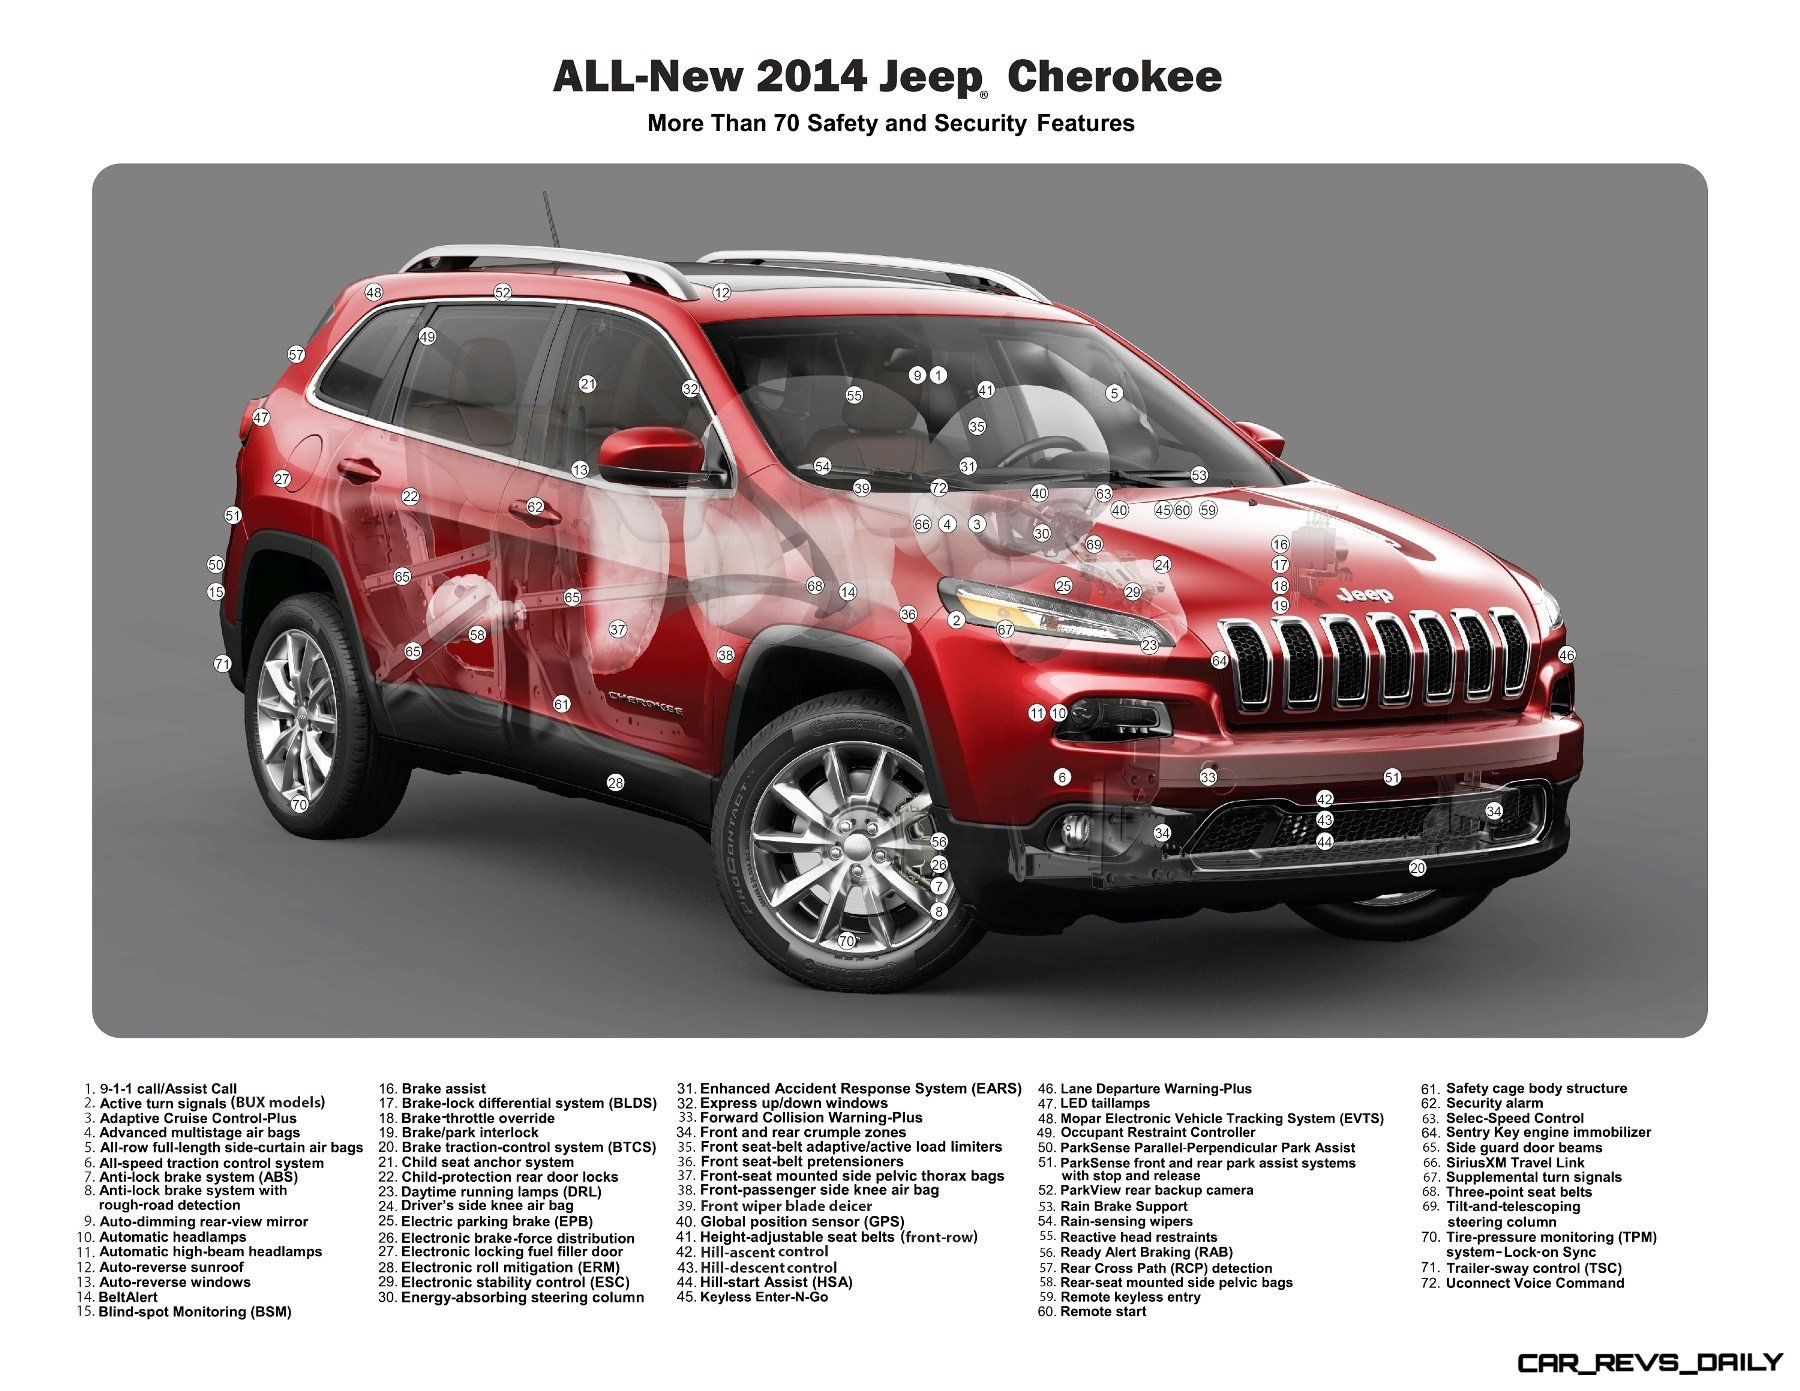 2014 Jeep Cherokee Safety and Security Features